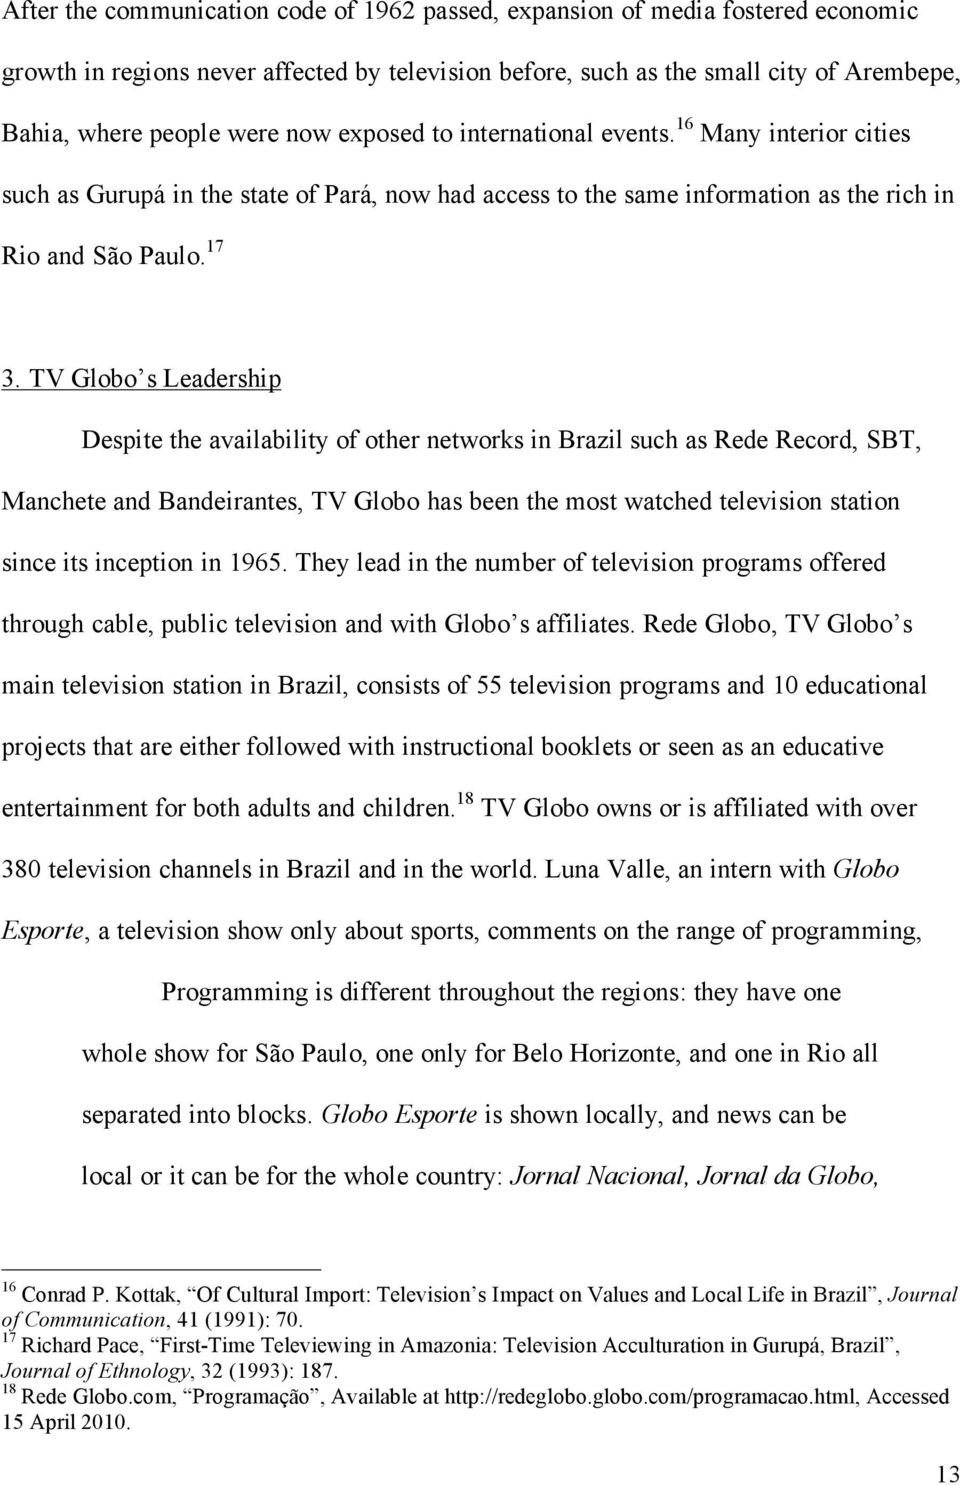 TV Globo s Leadership Despite the availability of other networks in Brazil such as Rede Record, SBT, Manchete and Bandeirantes, TV Globo has been the most watched television station since its